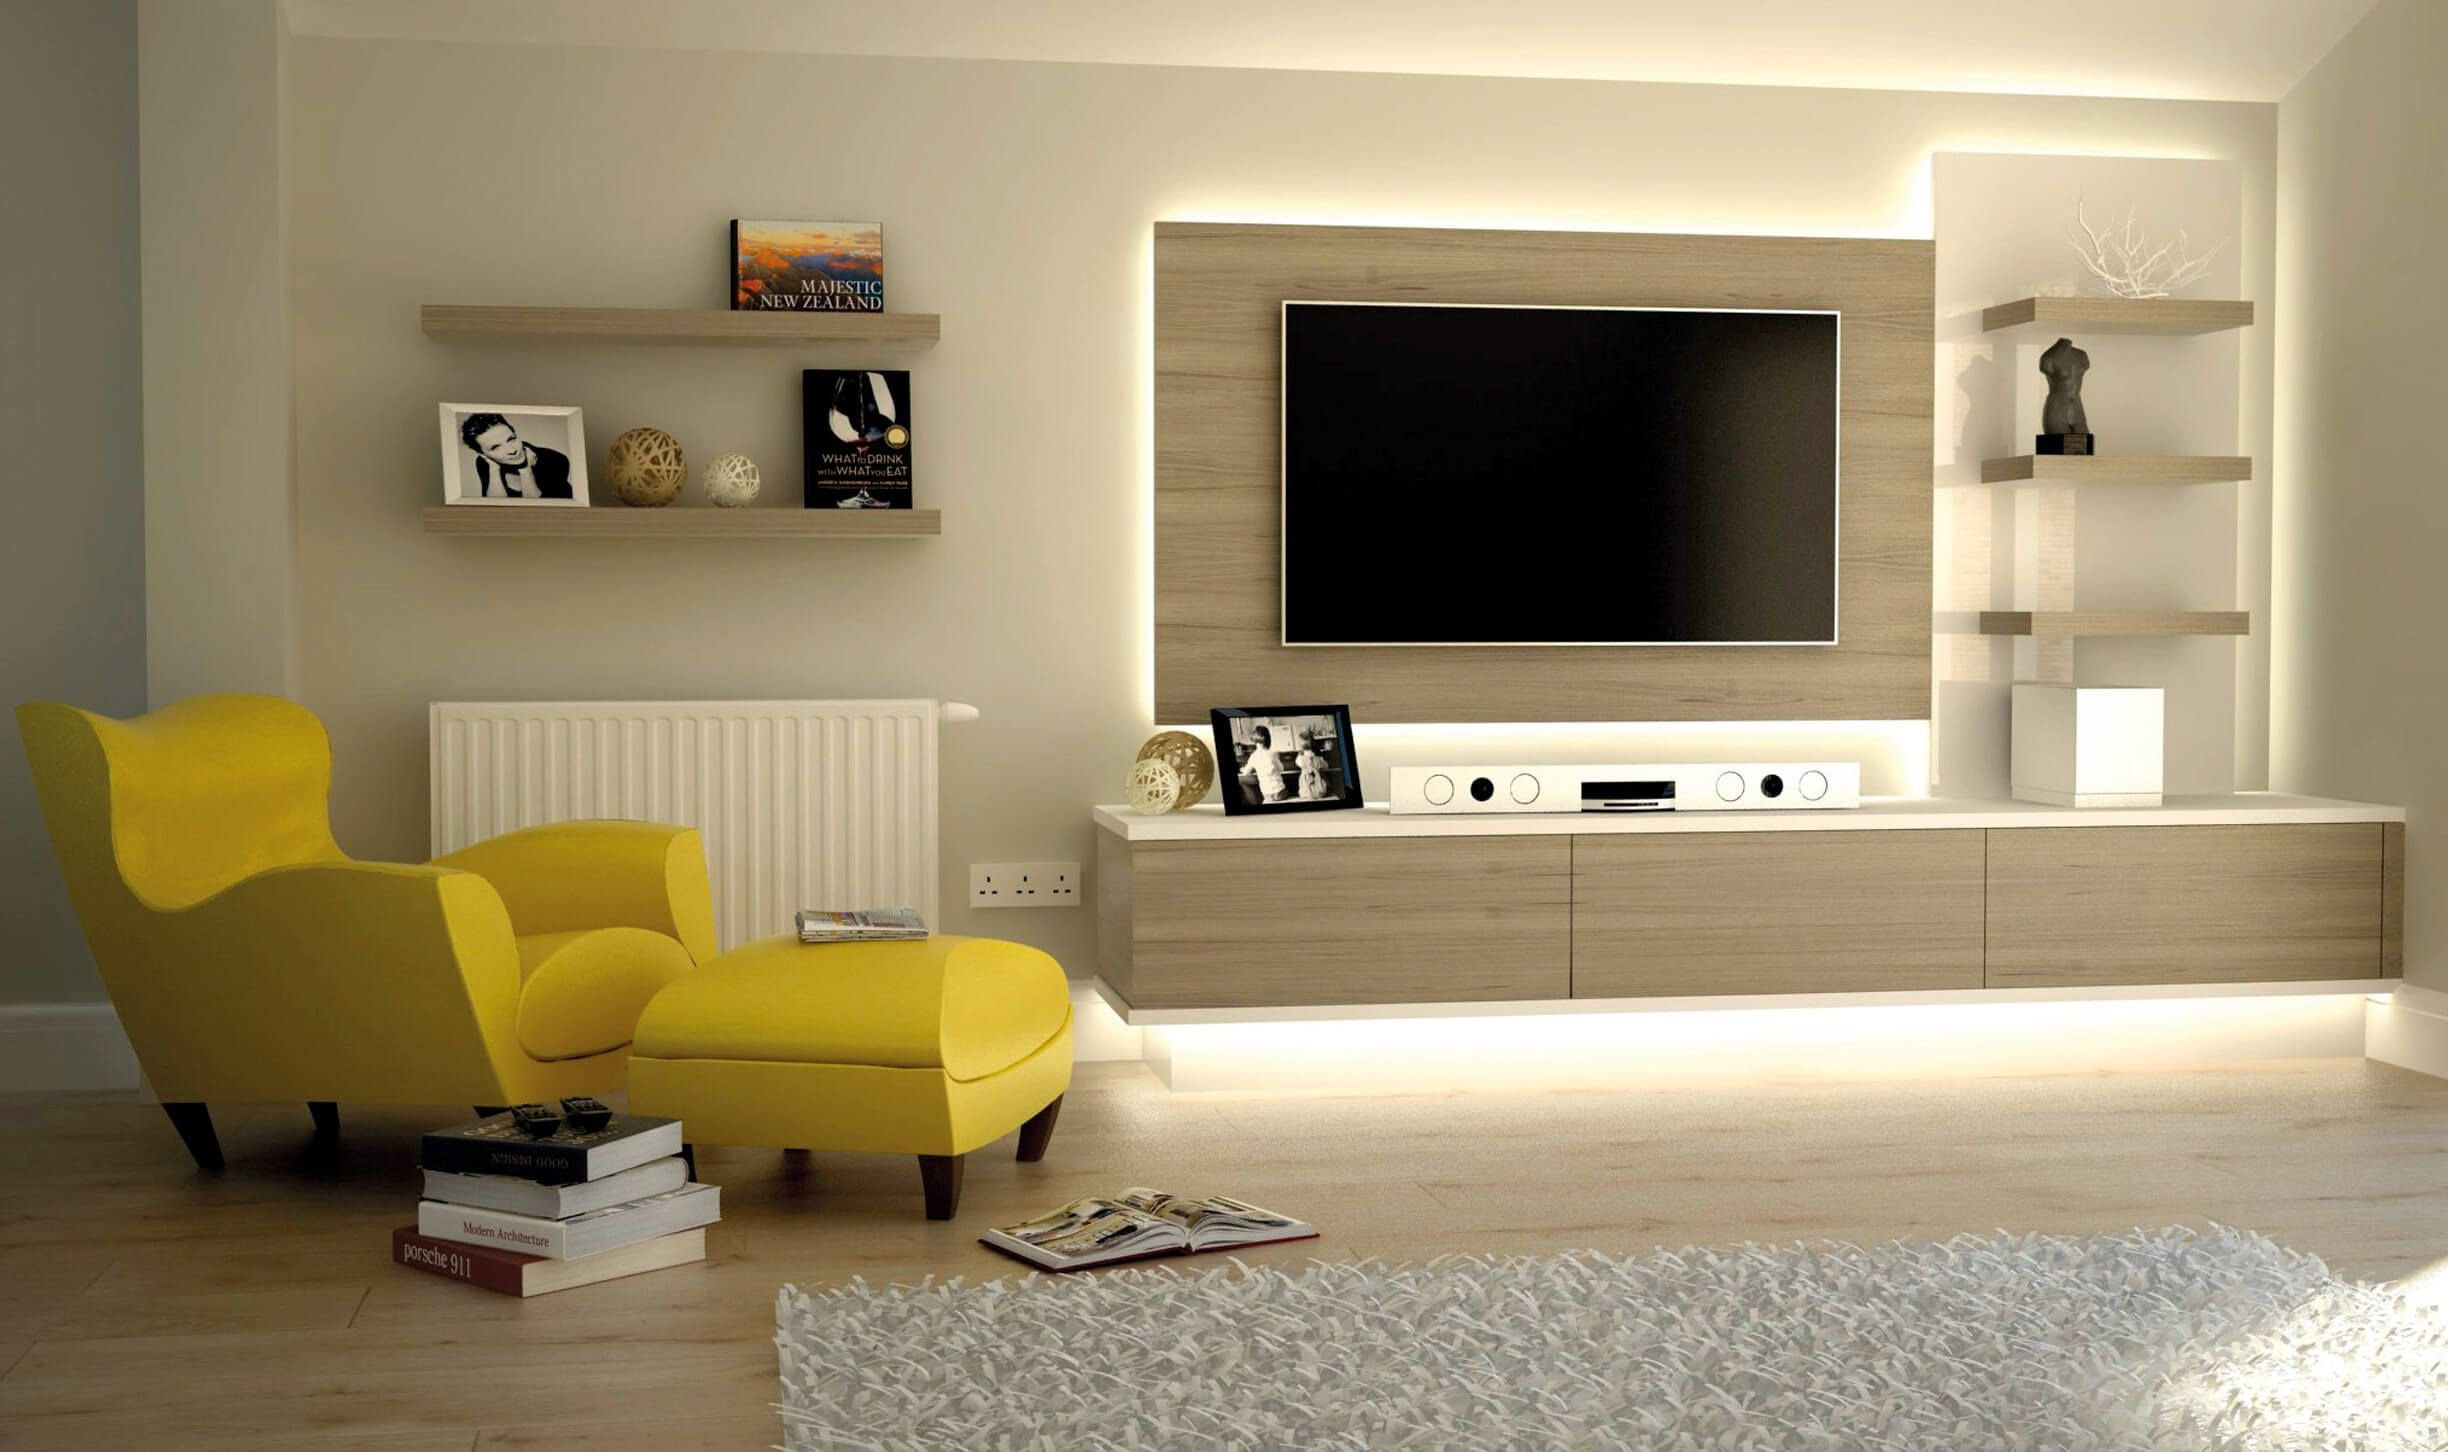 Living Room Ideas Tv Stand Bespoke Tv Cabinets Bookcases and Storage Units for Over